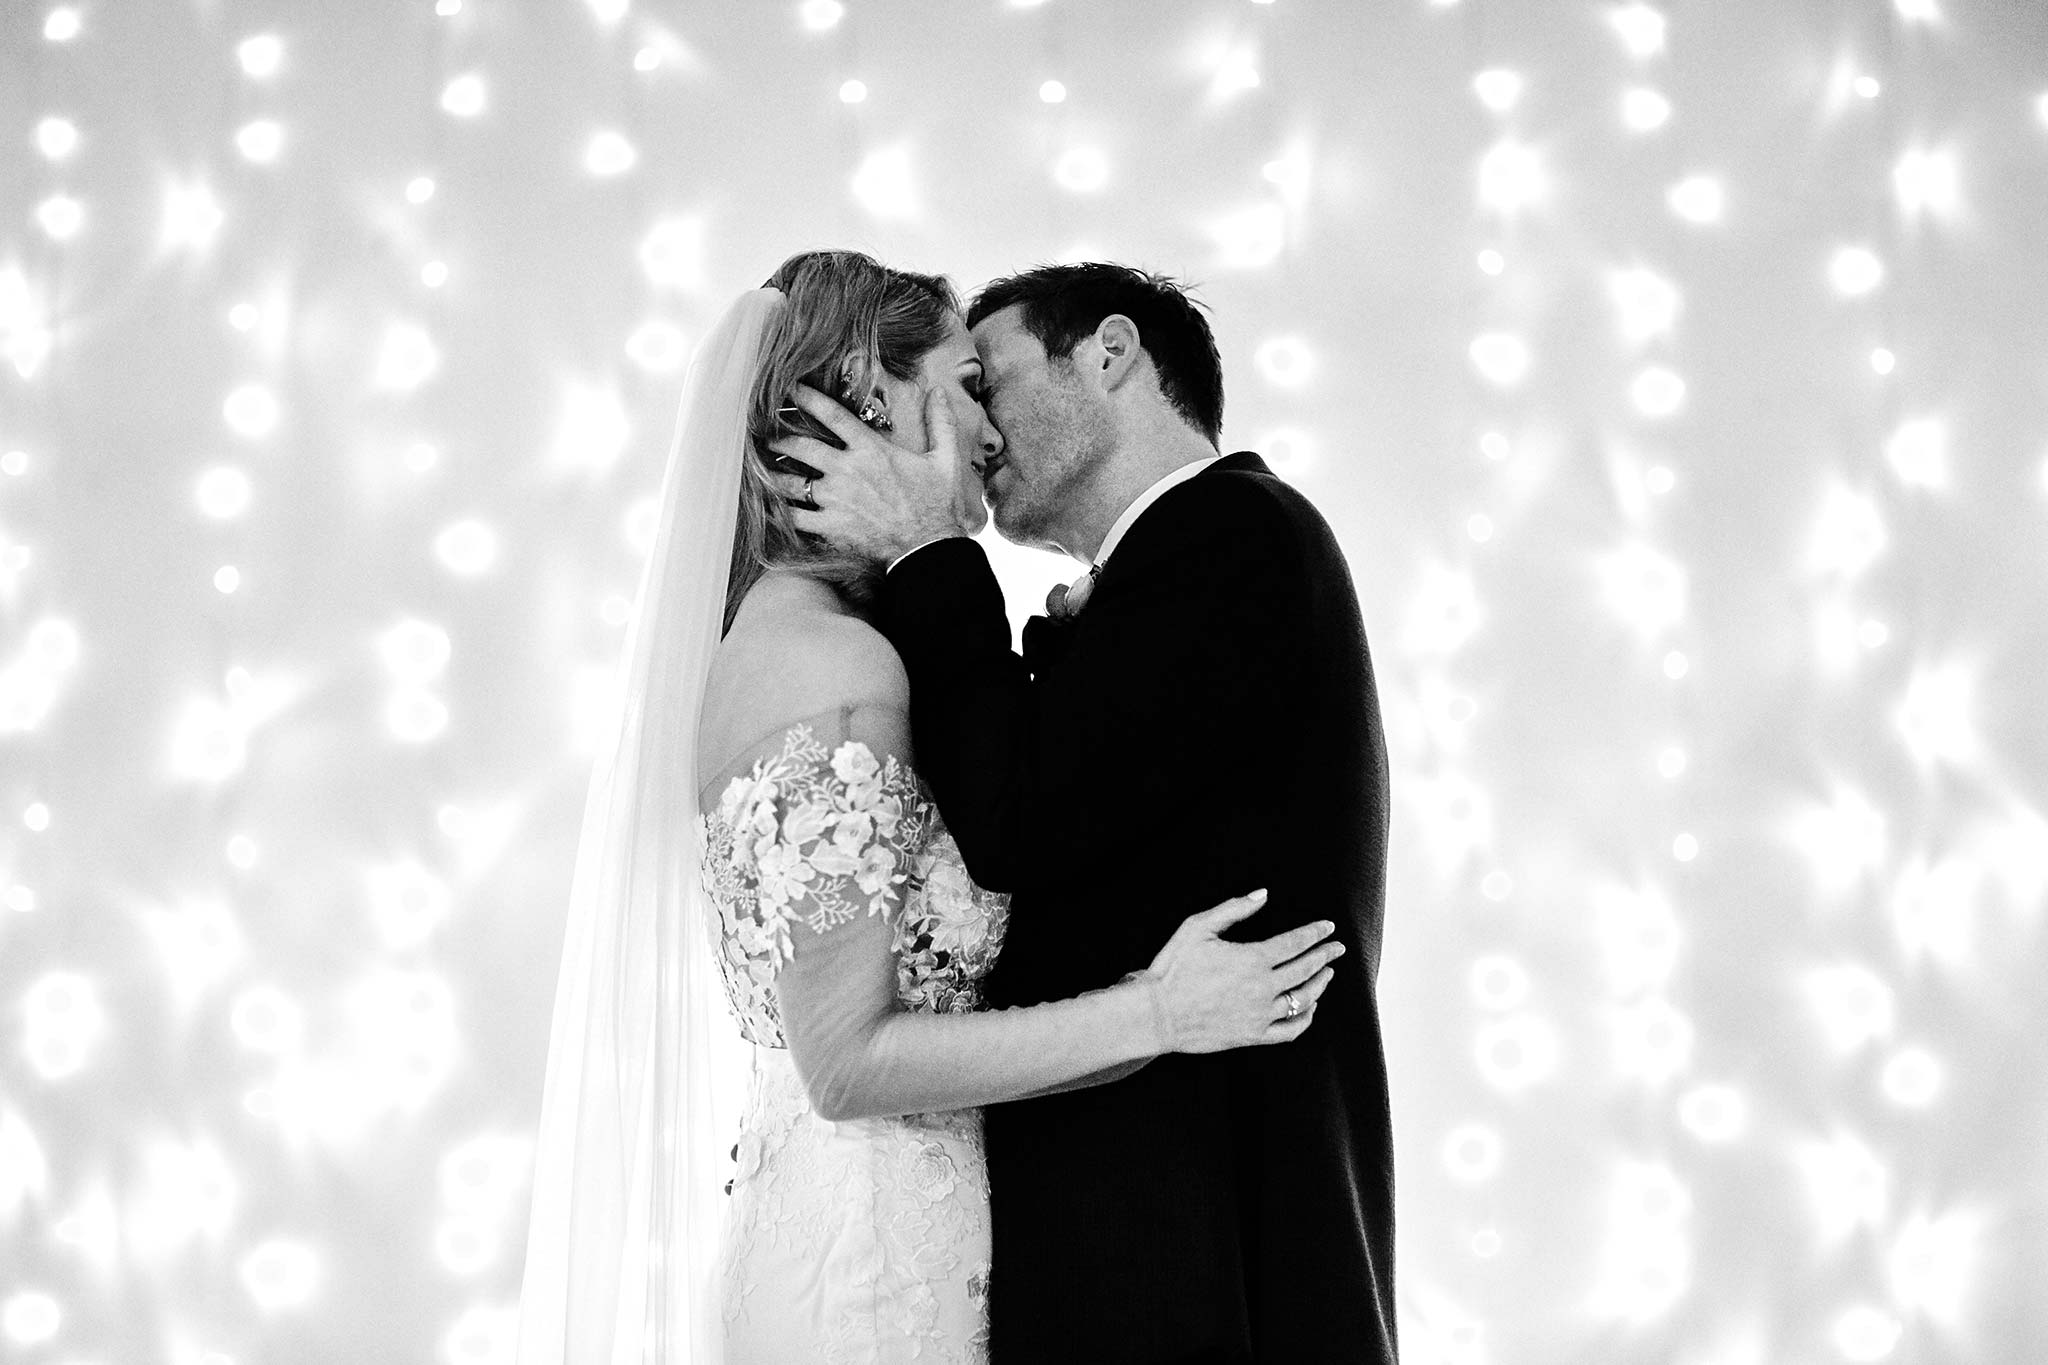 Melbourne-Wedding-Photographer-smartartz-gallery-ceremony-kiss